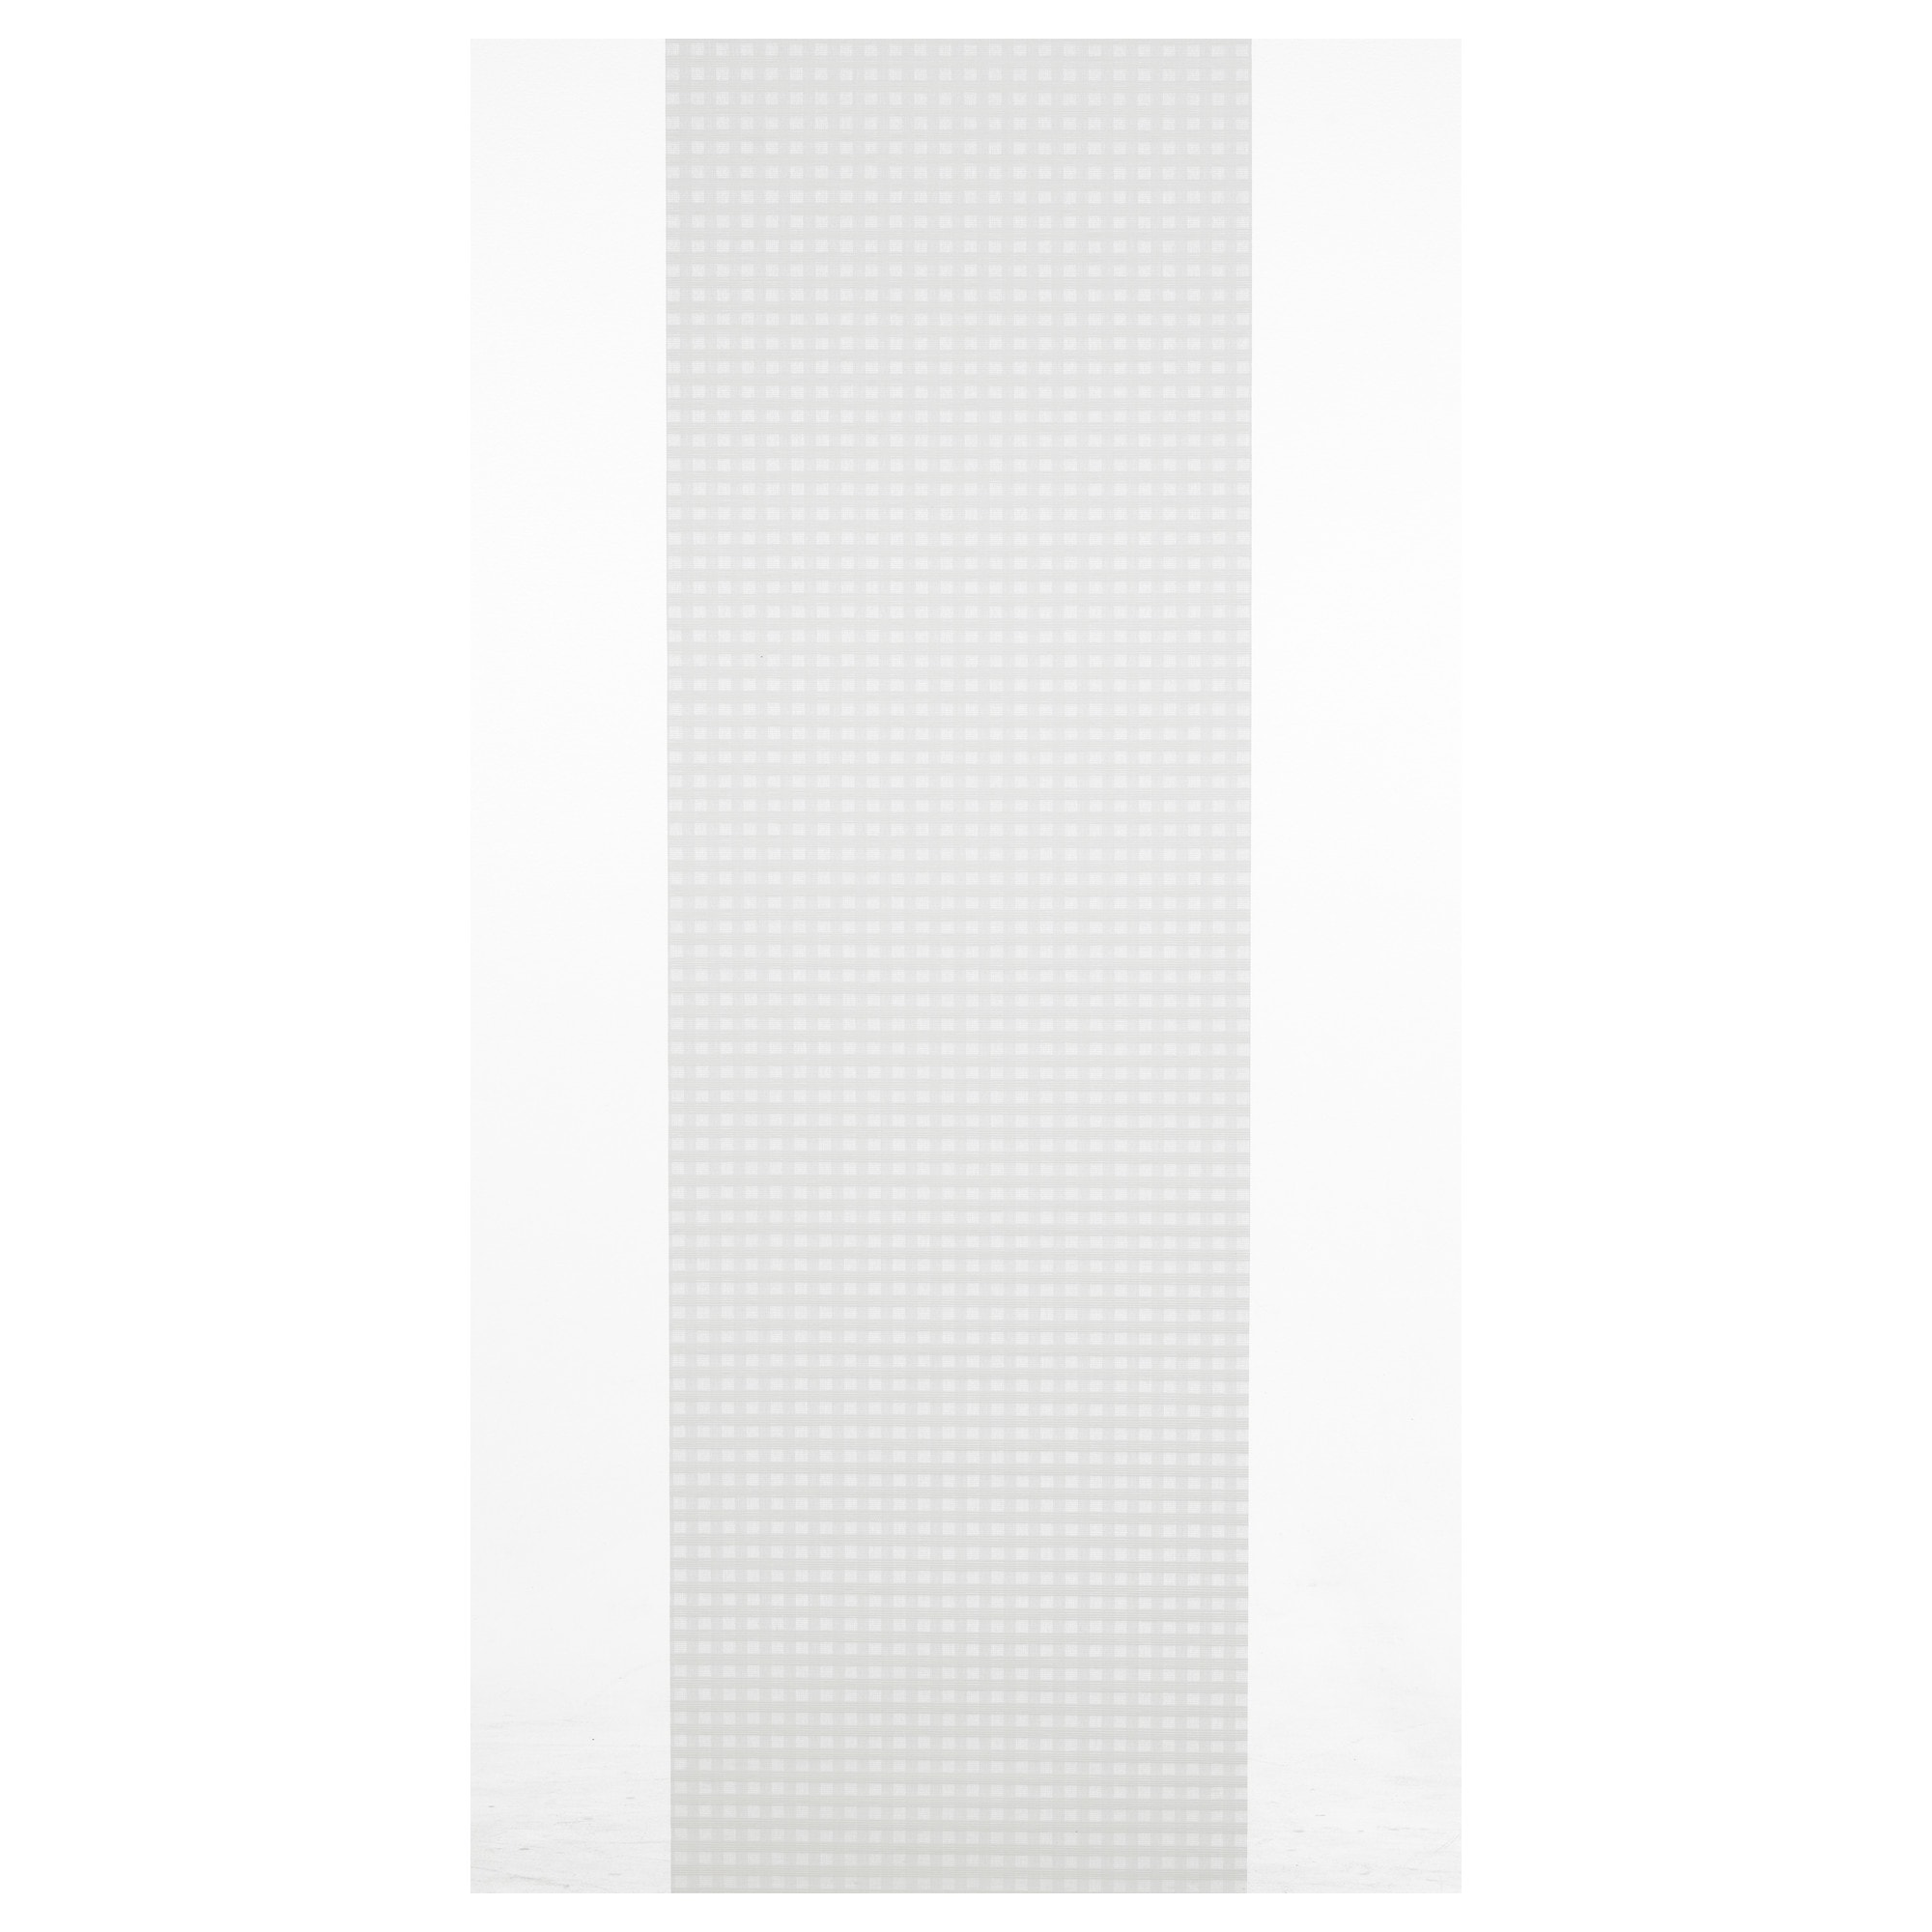 Ikea white curtains with red pattern - Ingamaj Panel Curtain White Length 118 Width 24 Weight 1 10